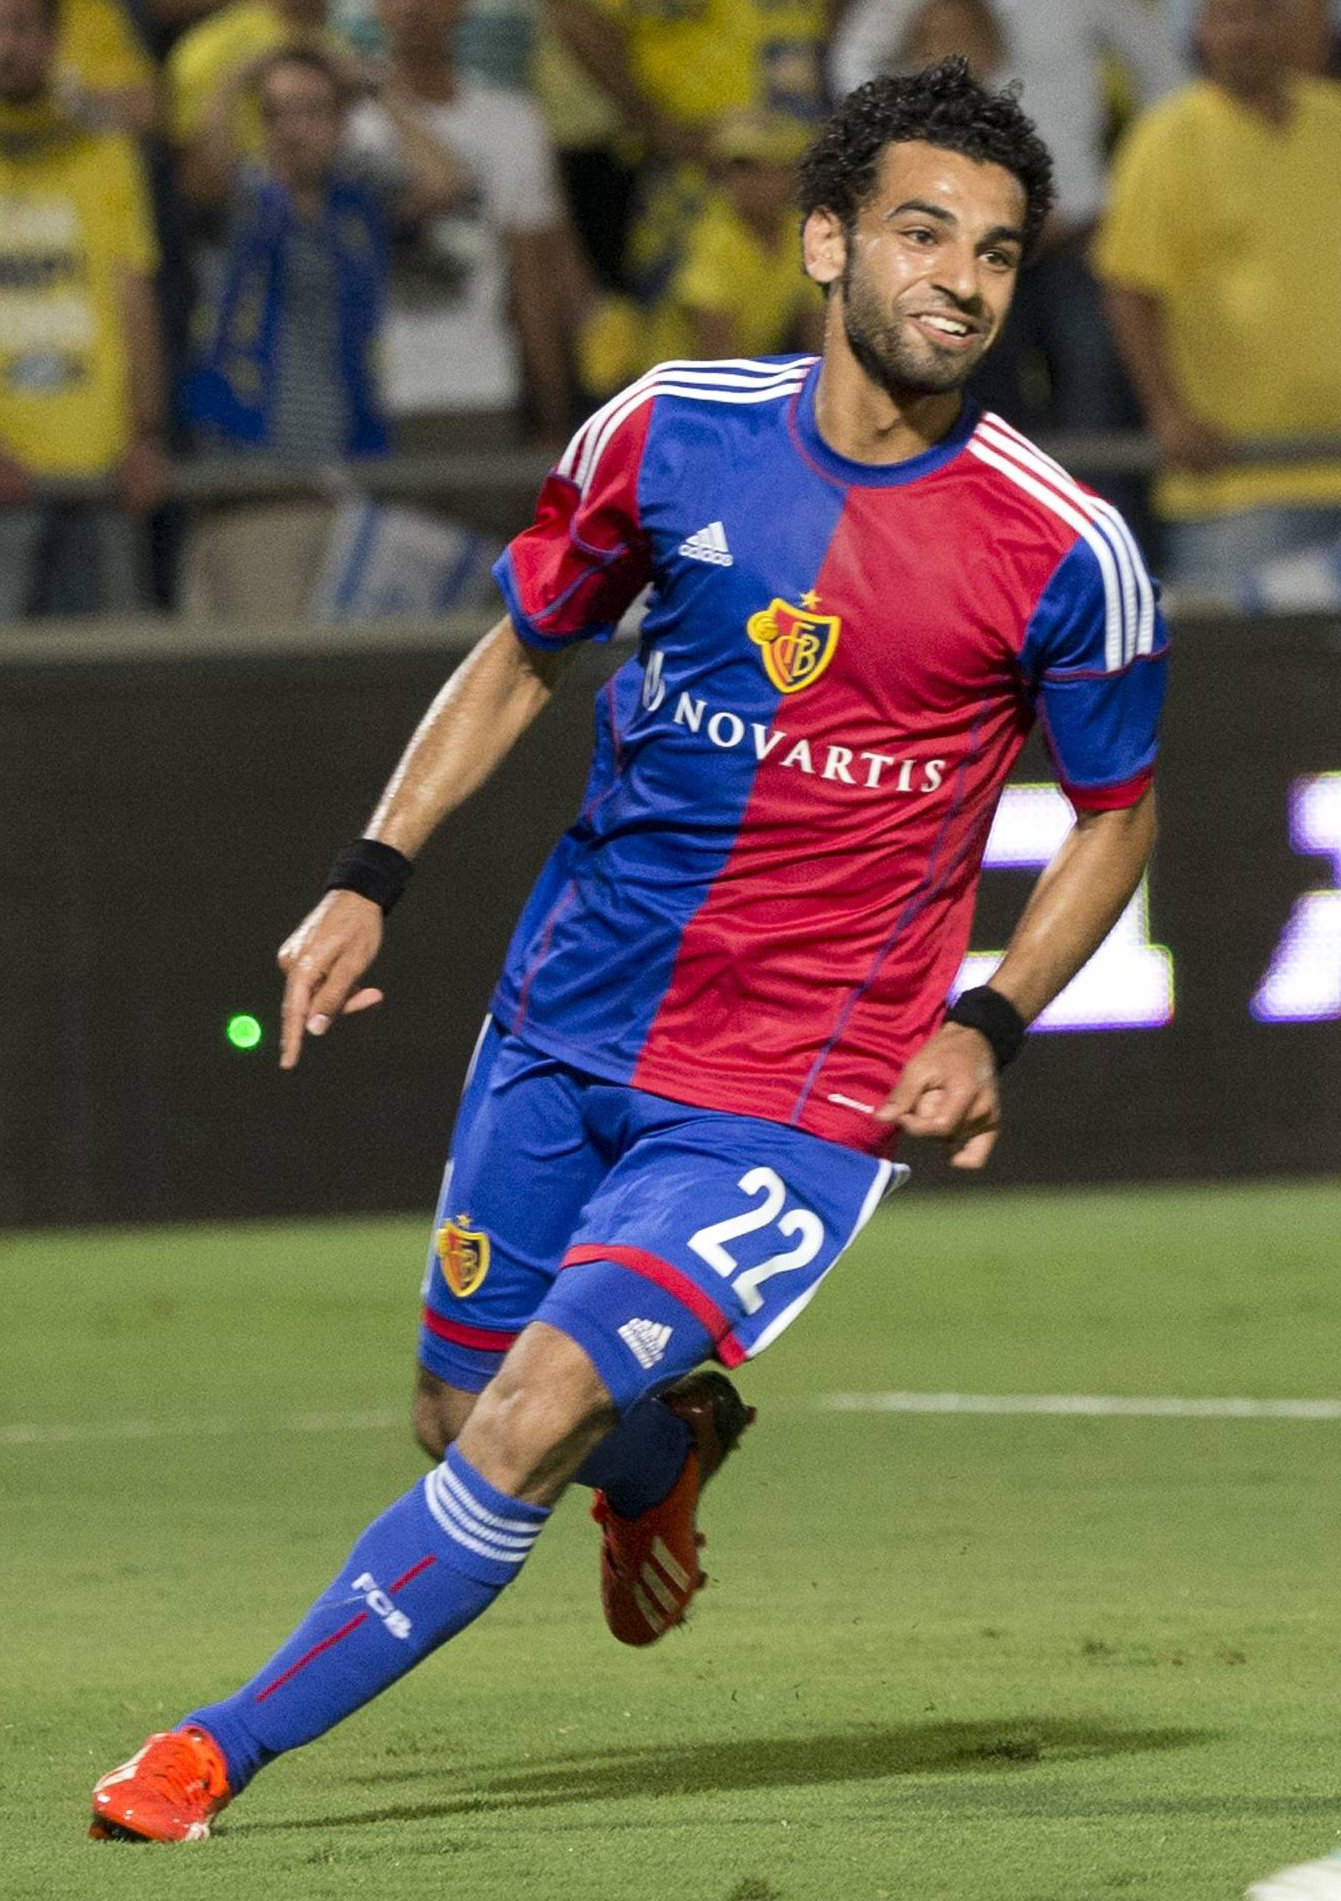 Switzerland's FC Basel midfielder Mohamed Sala celebrates after scoring against Maccabi Tel Aviv FC at the Bloomfield stadium in the coastal city of Tel Aviv on August 6, 2013 during the UEFA Champions League third qualifying round football match between Maccabi Tel Aviv and FC Basel. AFP PHOTO / JACK GUEZ (Photo credit should read JACK GUEZ/AFP/Getty Images)